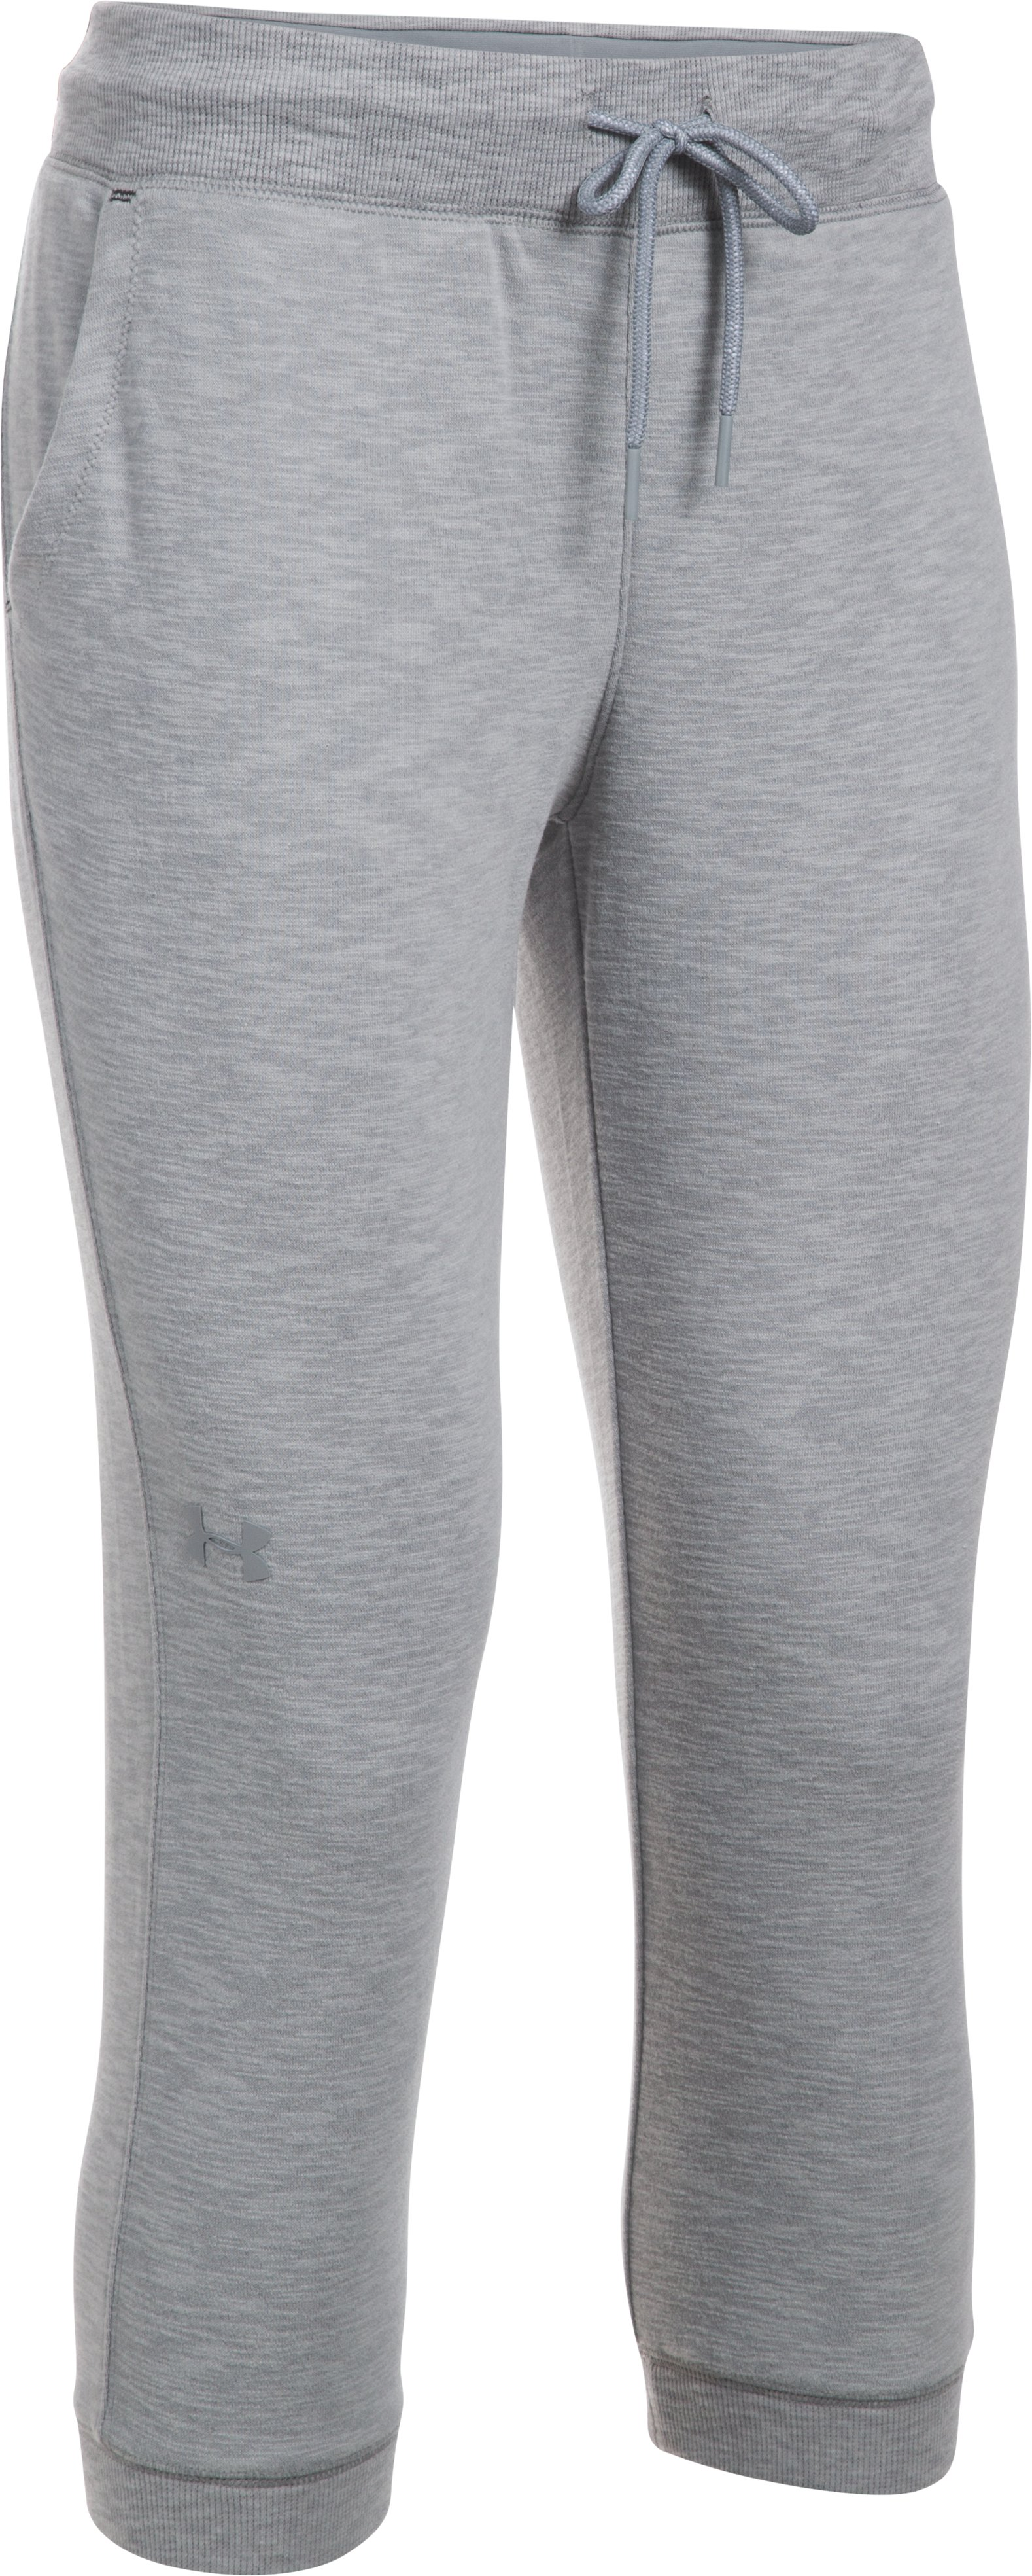 Women's UA Ocean Shoreline Terry Capris, True Gray Heather, undefined